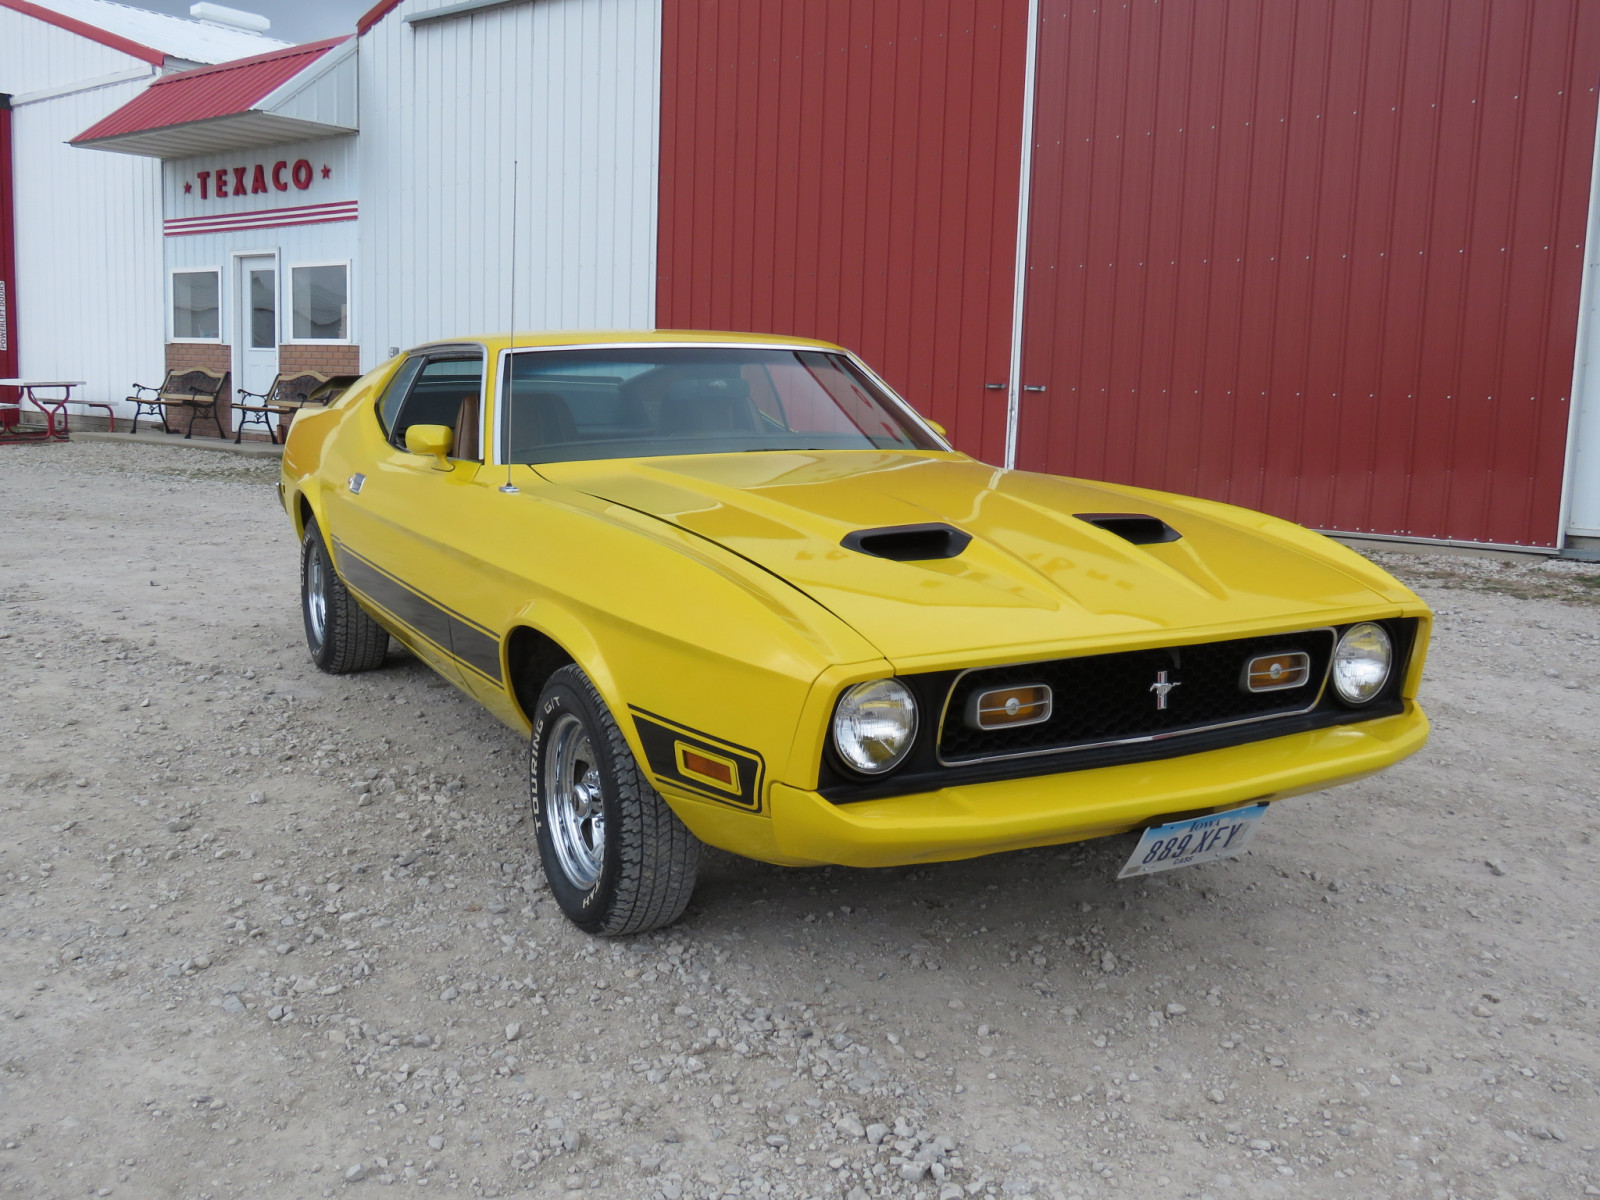 1973 Ford Mach 1 Mustang Coupe - Image 1